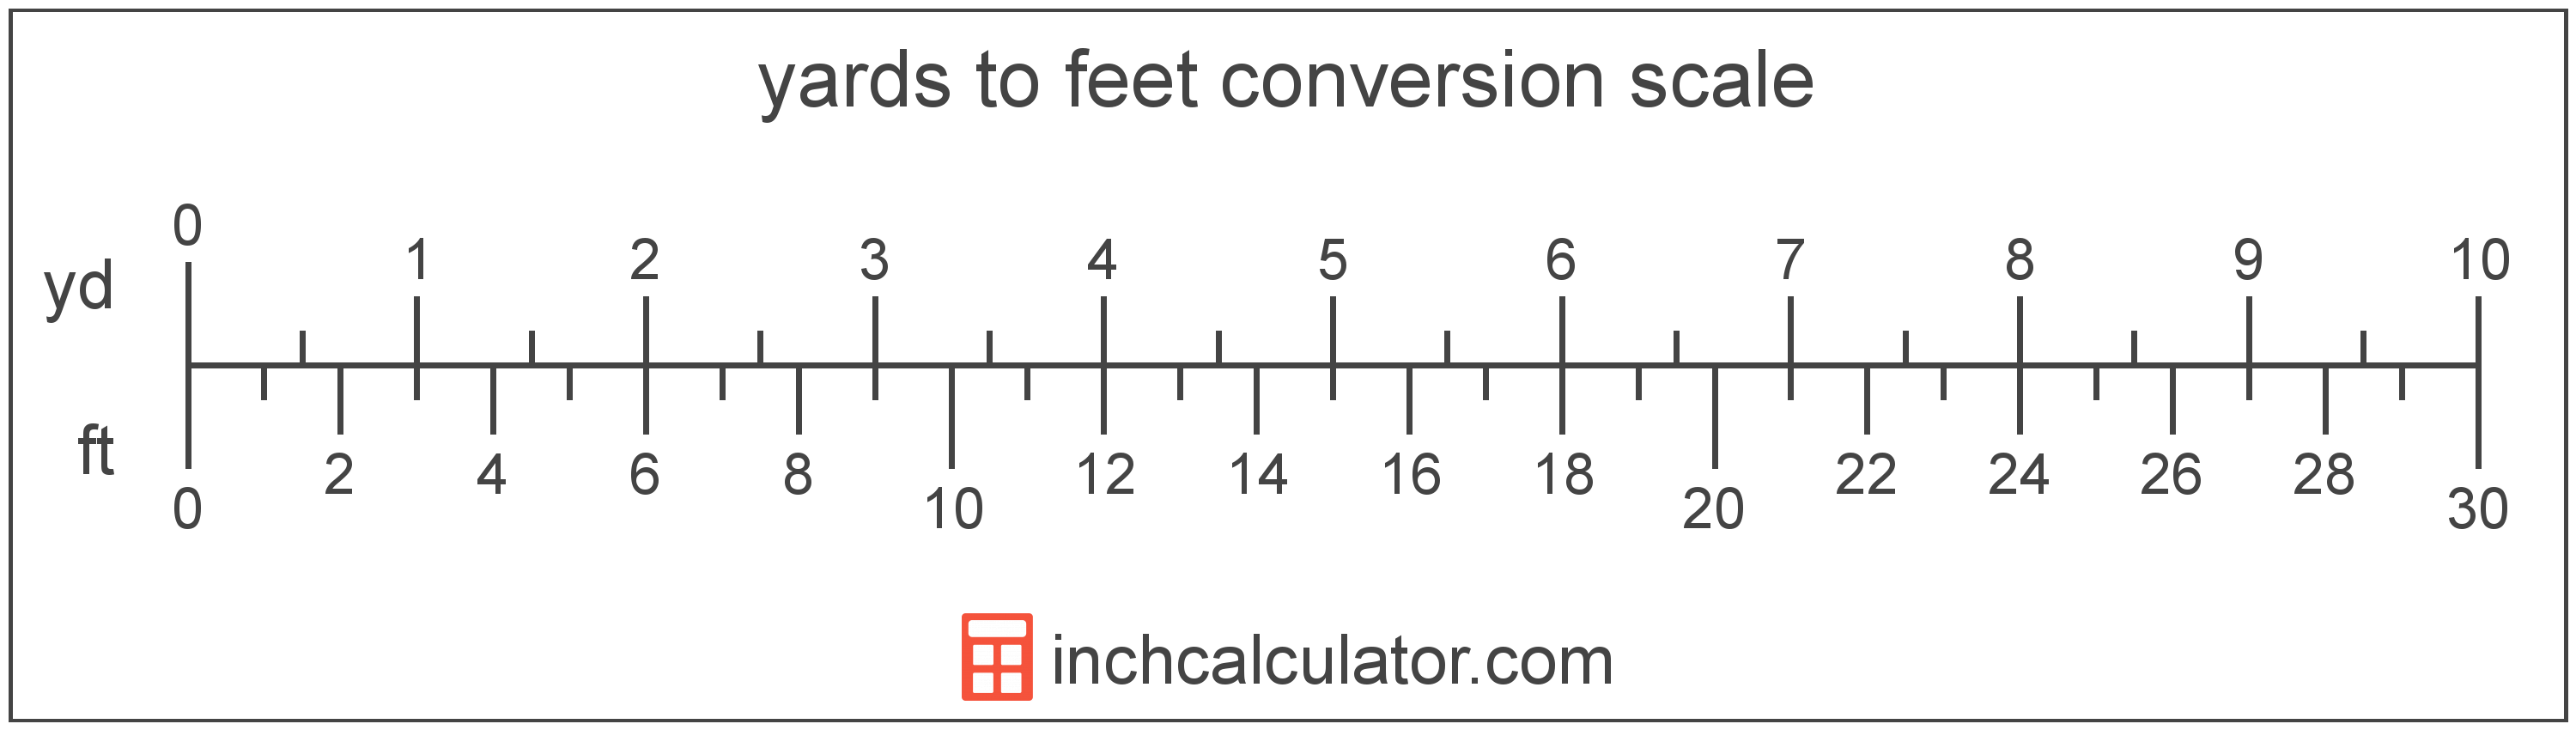 conversion scale showing feet and equivalent yards length values